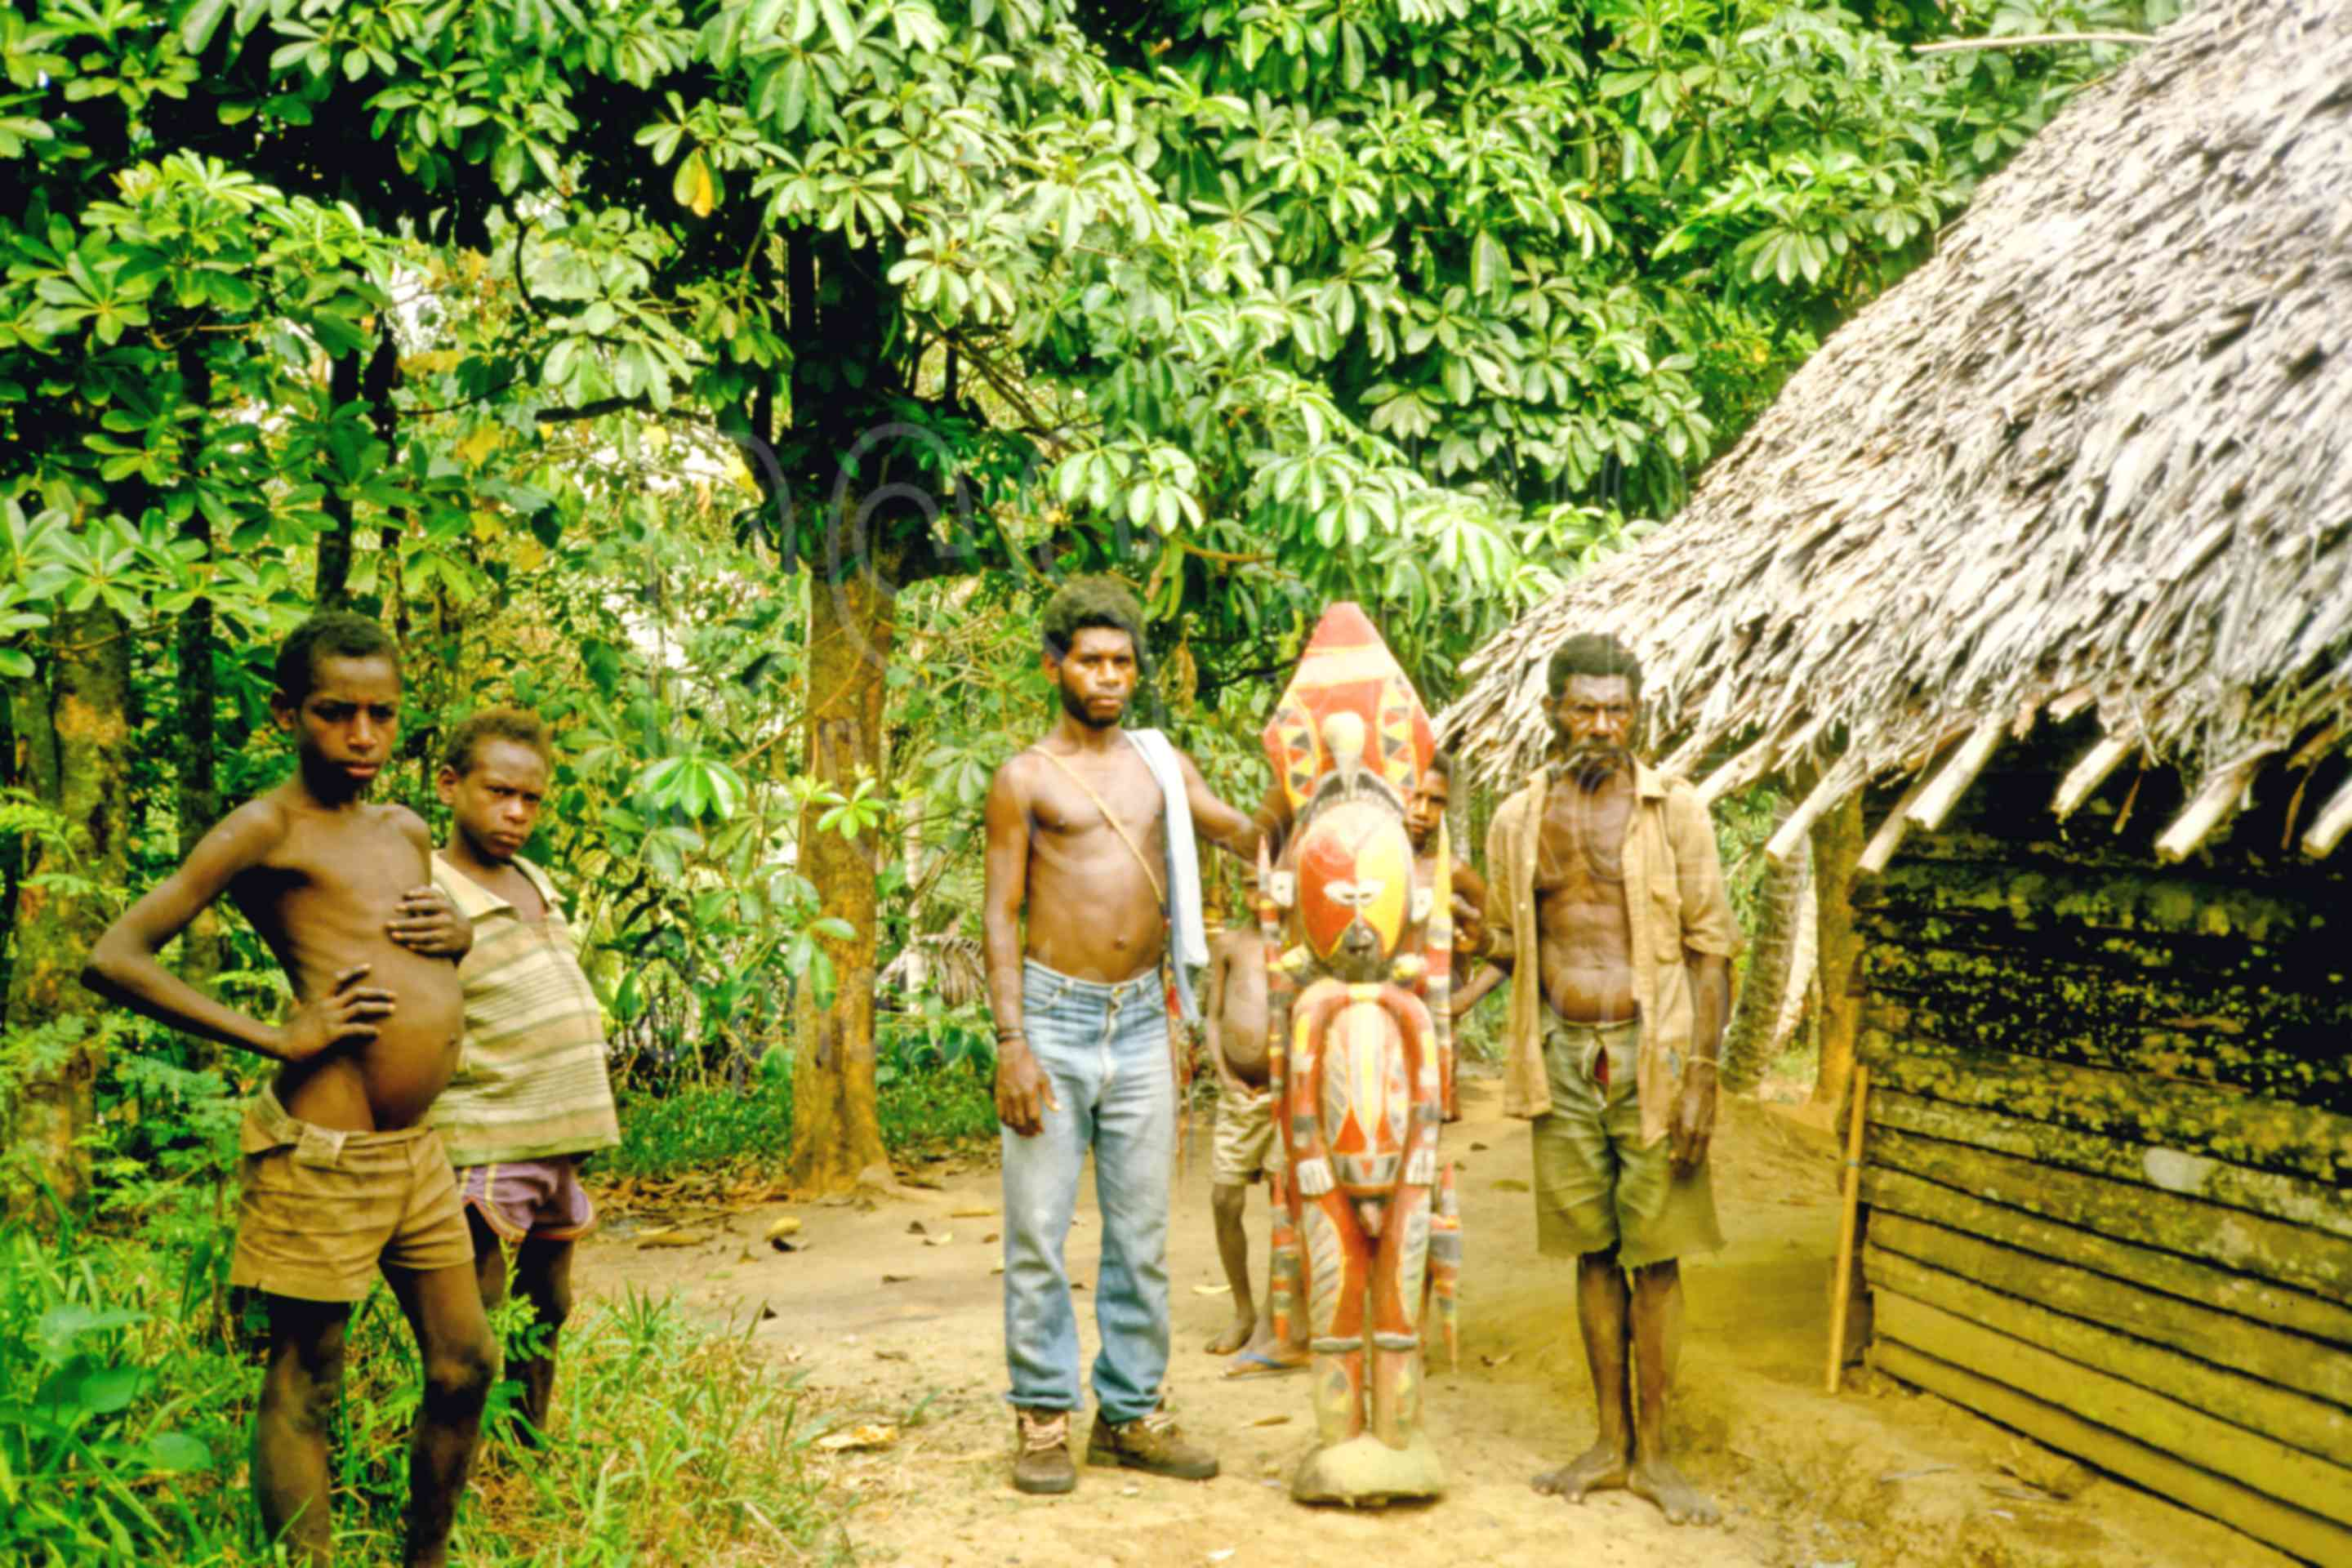 Man and Son with Carving,arts,artifact,boys,carving,mans,sons,png markets